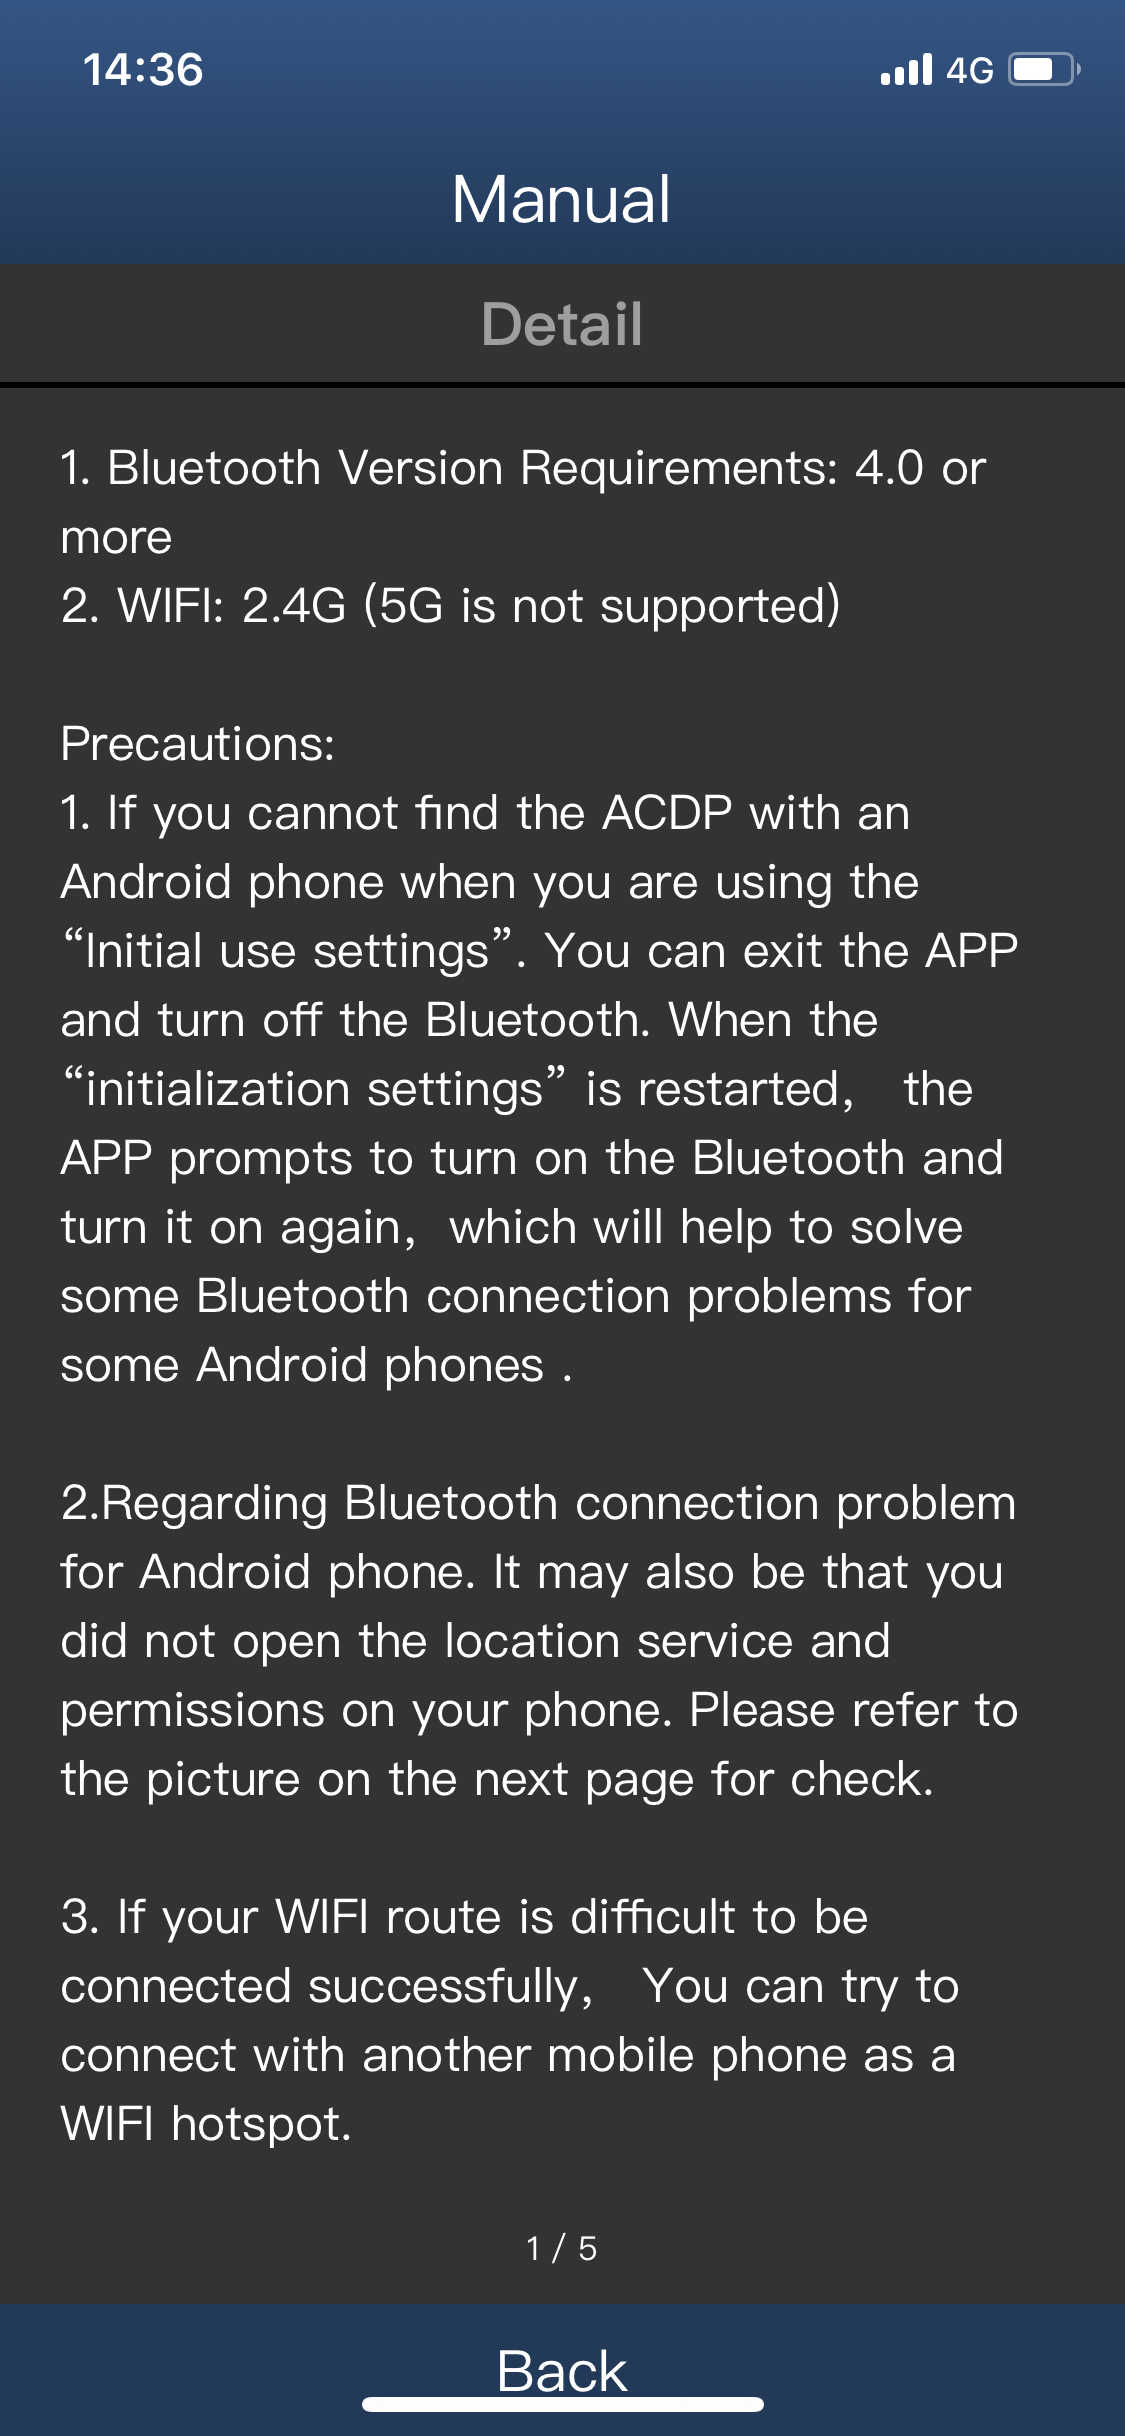 yanhua-acdp-wifi-bluetooth-connection